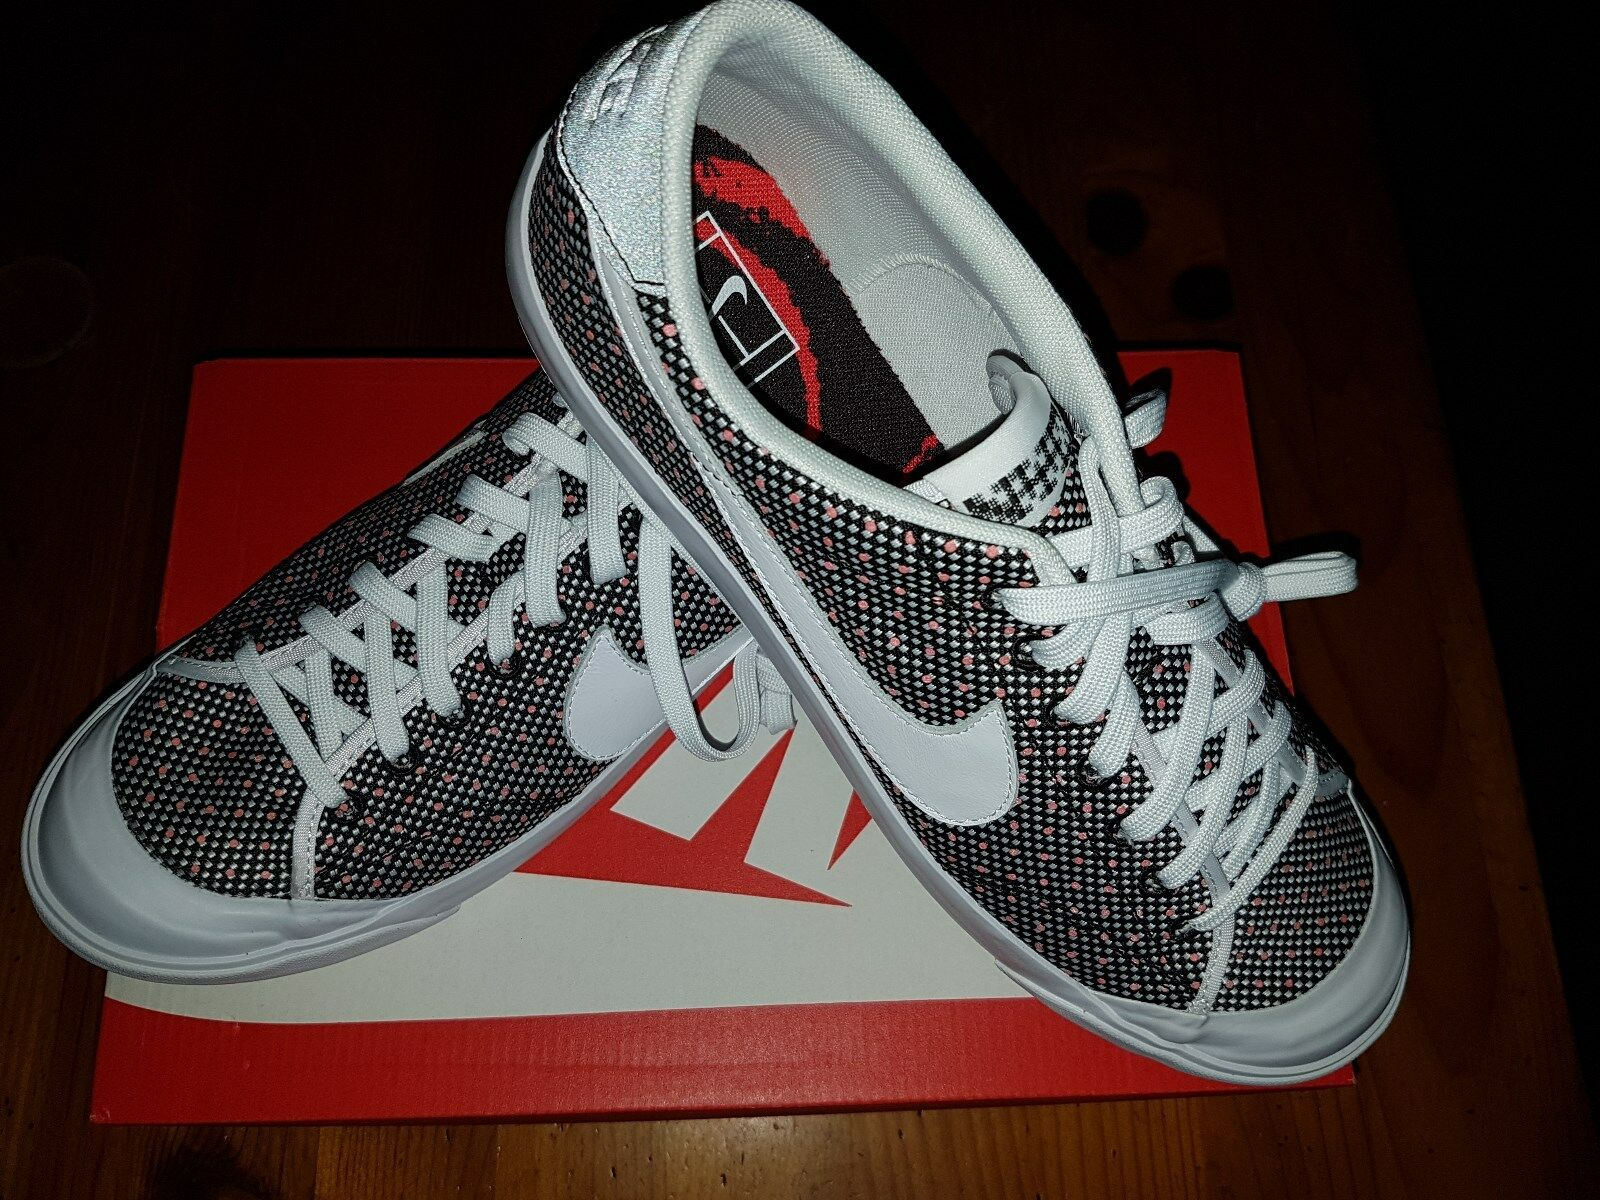 The most popular shoes for men and women Nike All Court 2 low KJCRD Trainers BNWB UK10